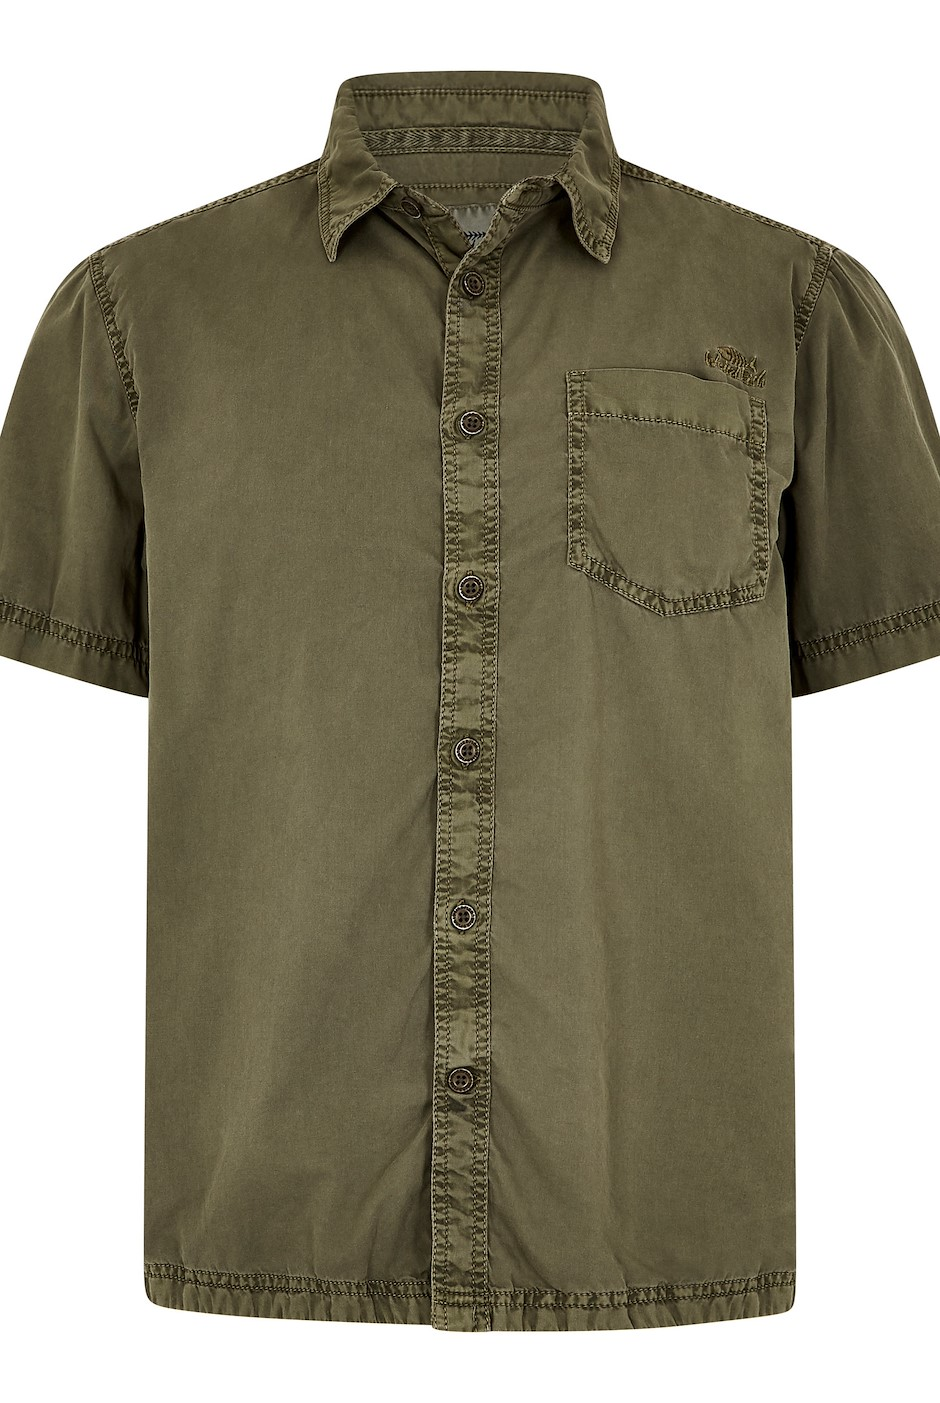 Salen Garment Dyed Twill Shirt Khaki Green